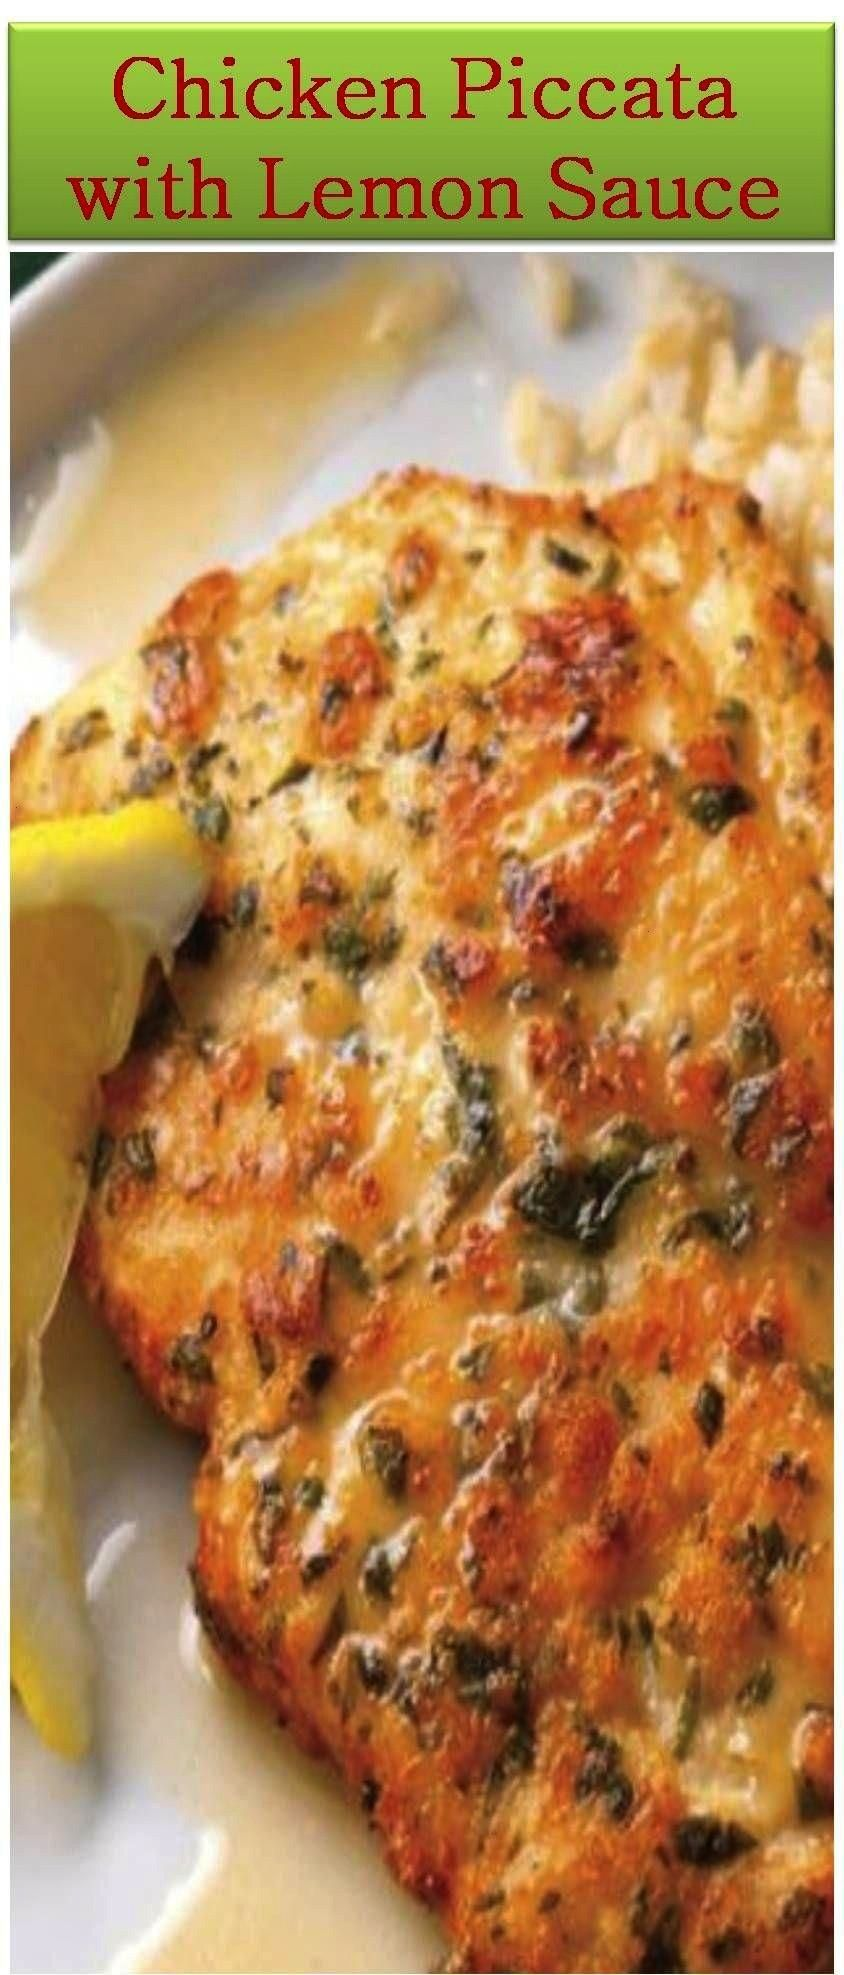 Best Chicken Piccata with Lemon Sauce Recipe  - New dinner ideas -The Best Chicken Piccata with Lem